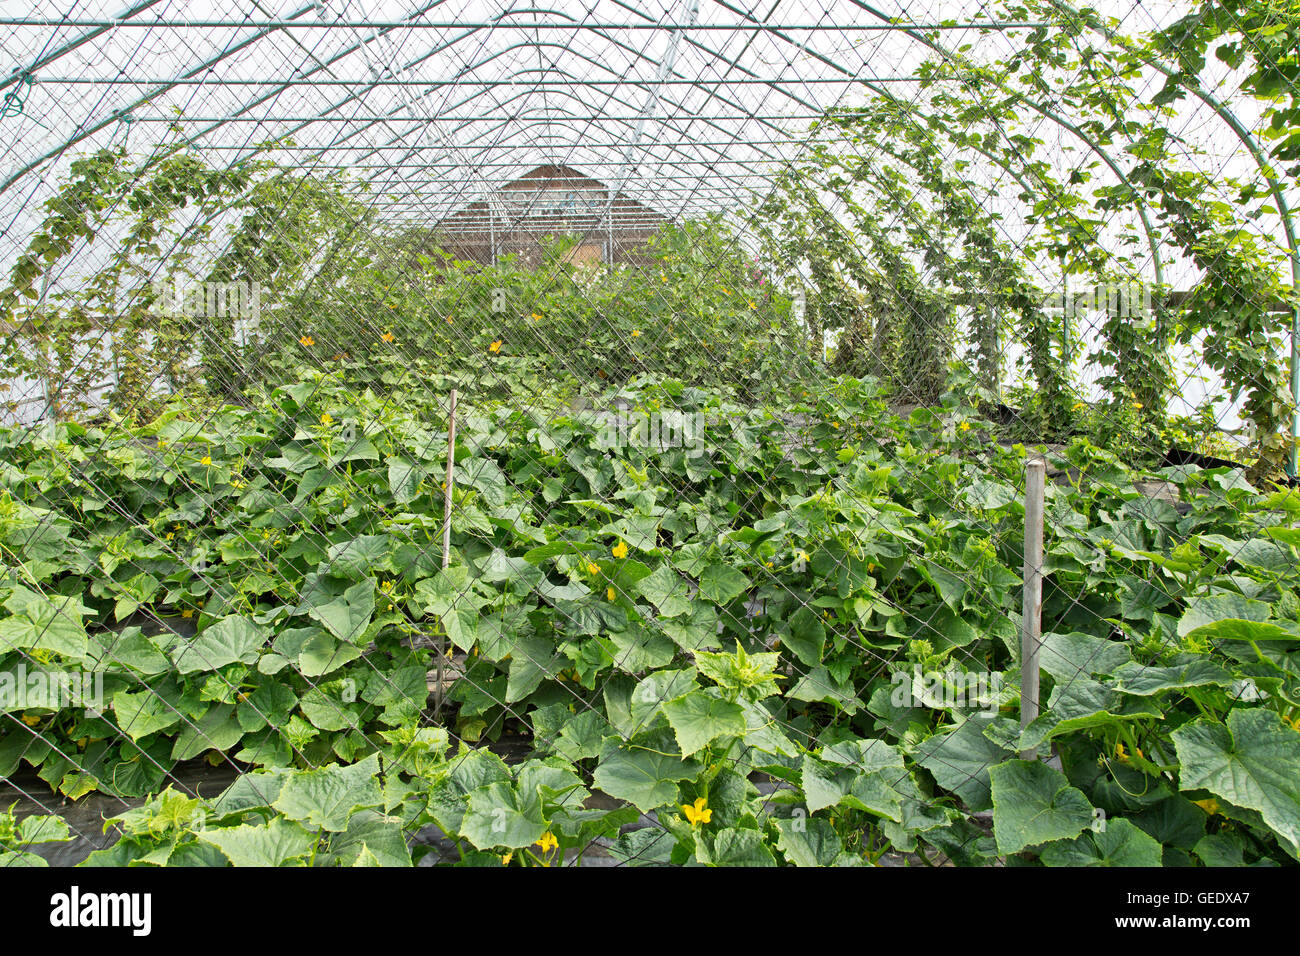 Tunnel, cucumber plants, hop climbing on both sides. - Stock Image